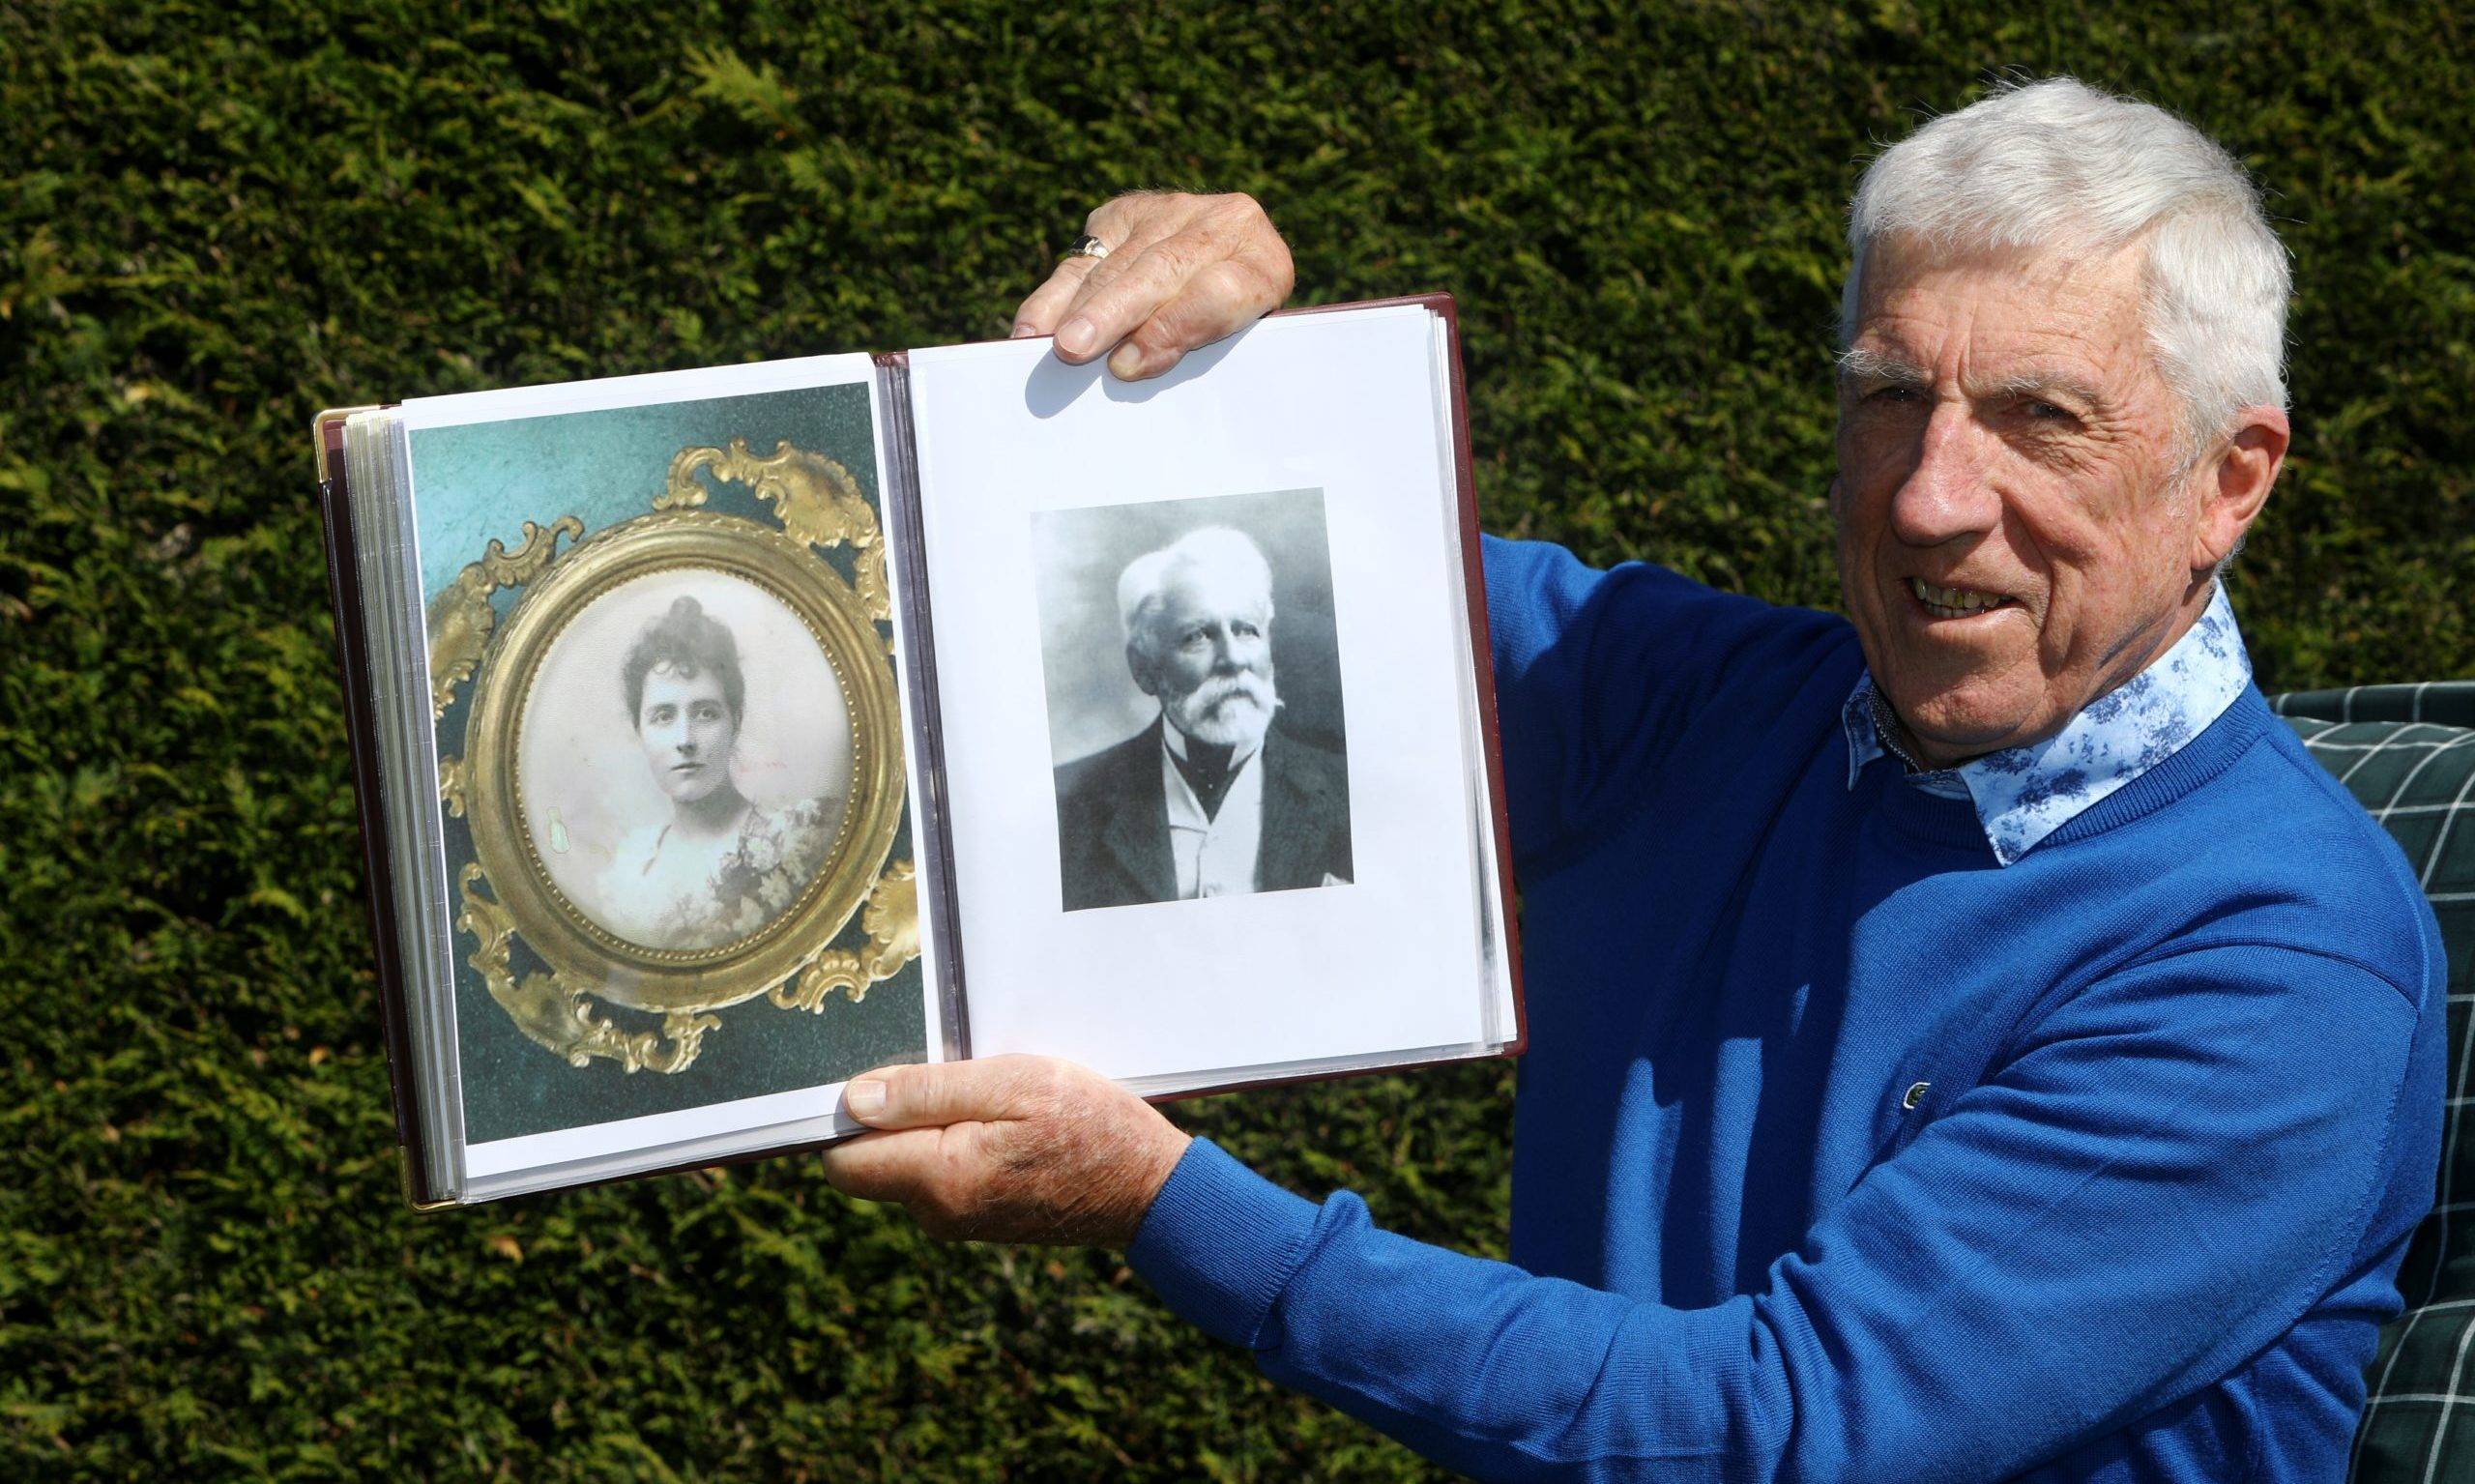 Ladybank Golf Club historian Bob Drummond at home in Ladybank today, holding photos of Catherine Maitland Soues and her husband F.W. Foster